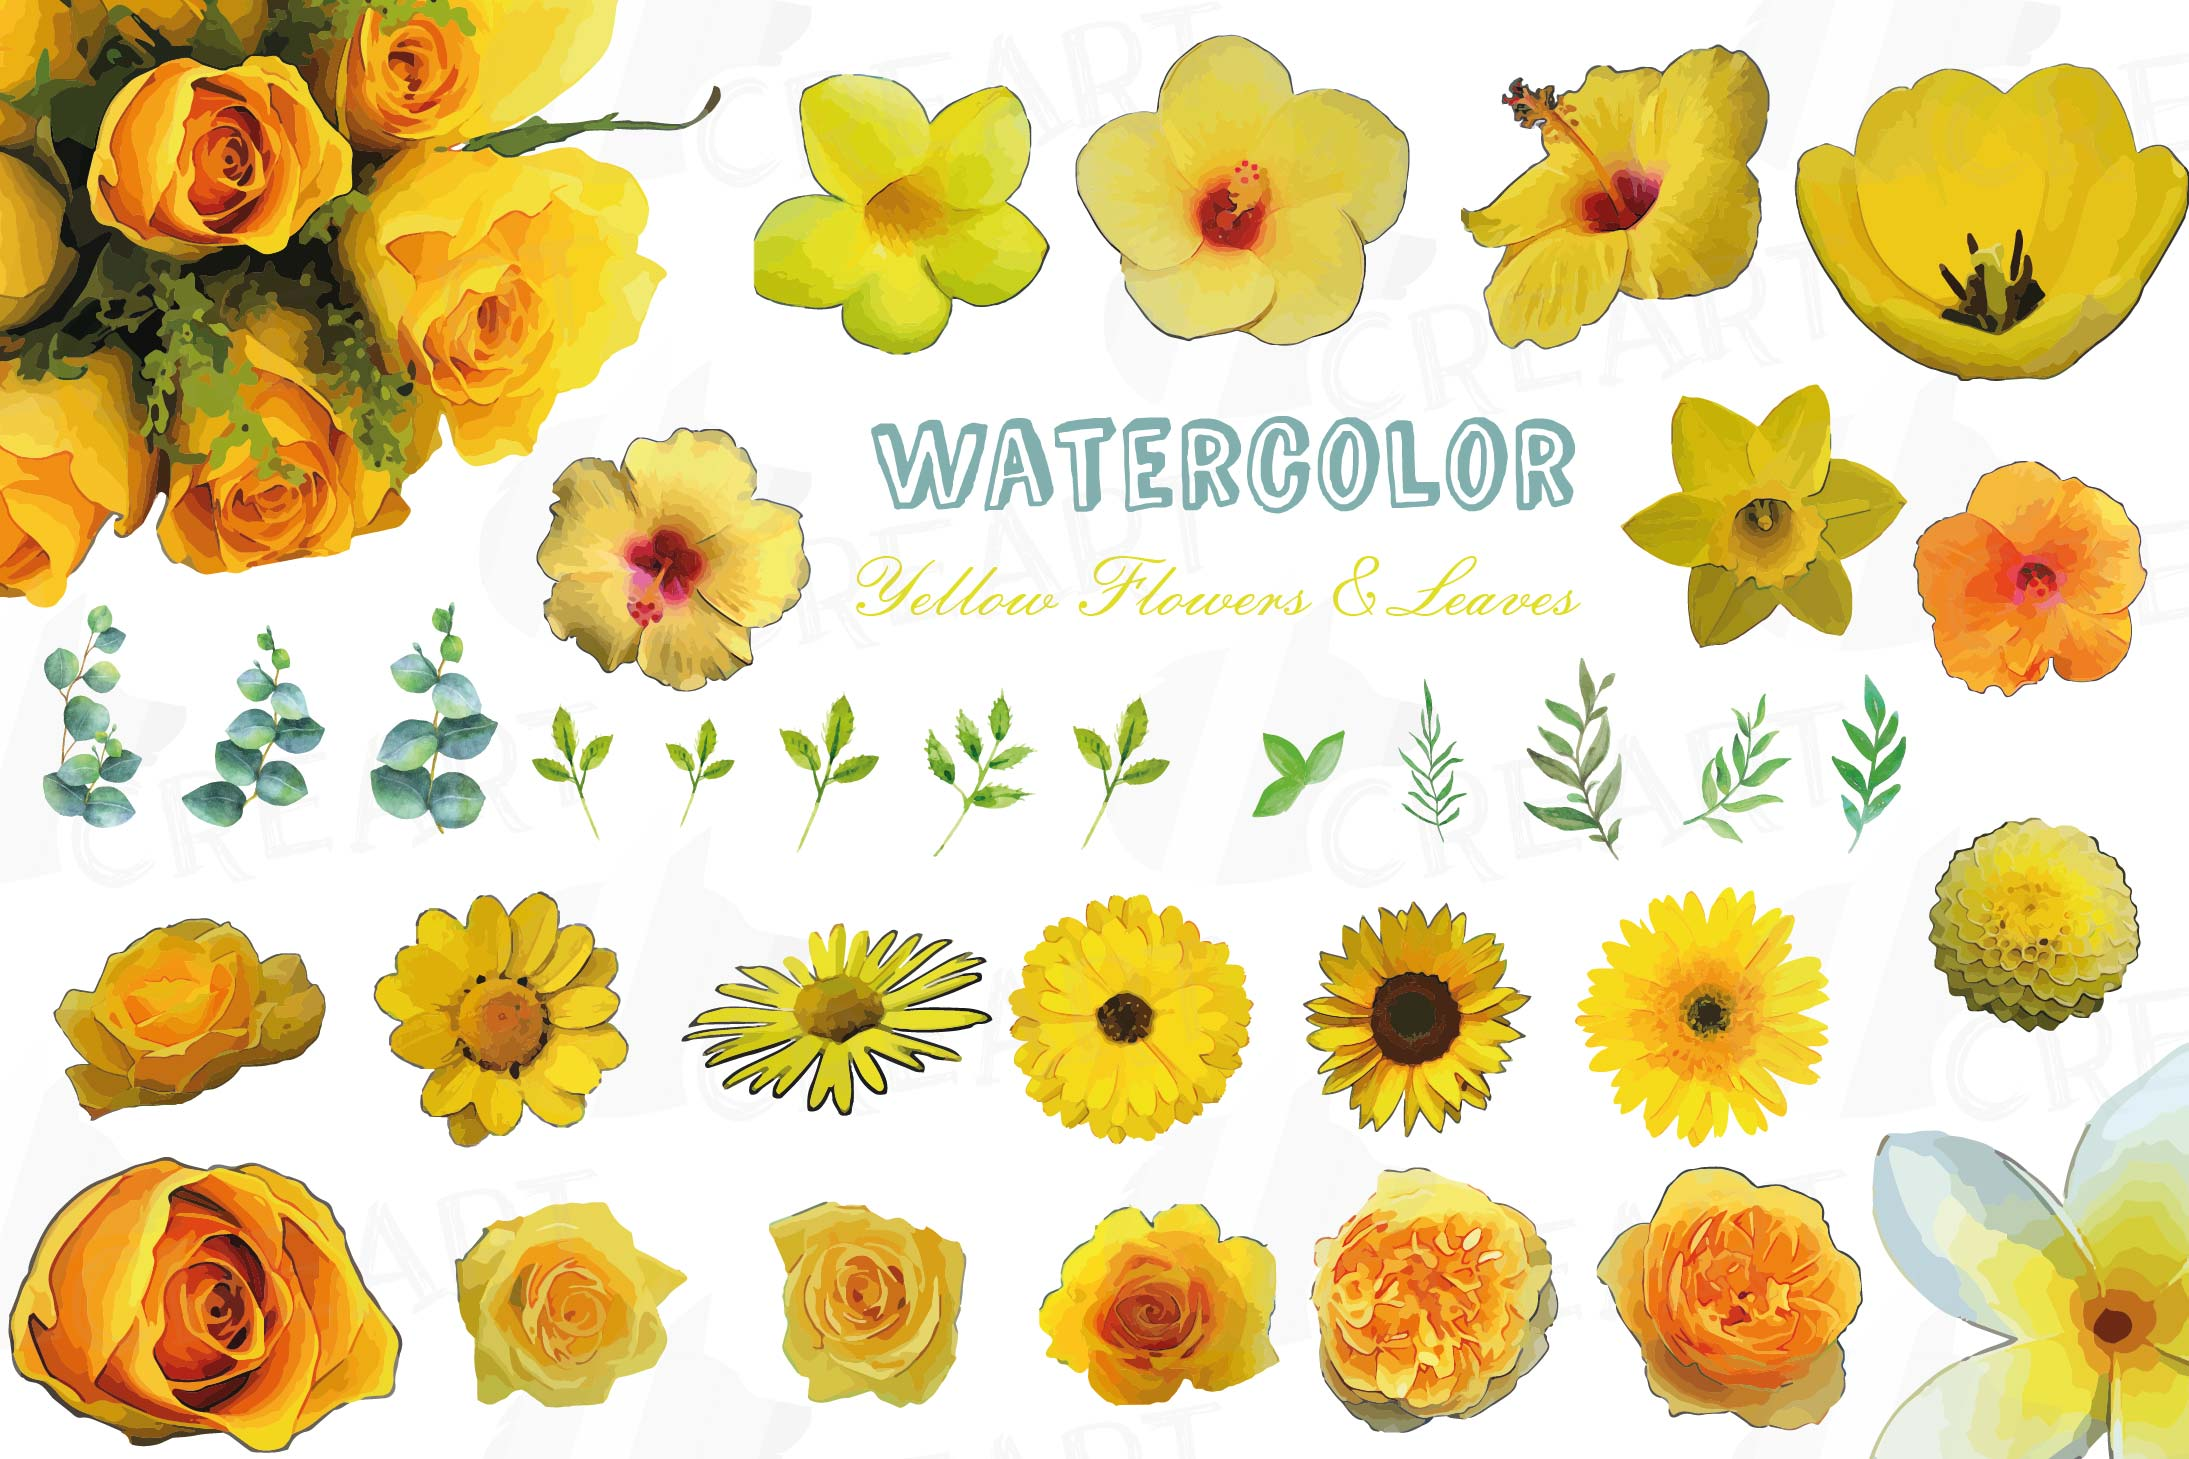 Watercolor yellow flowers and green leaves clip art pack example image 1